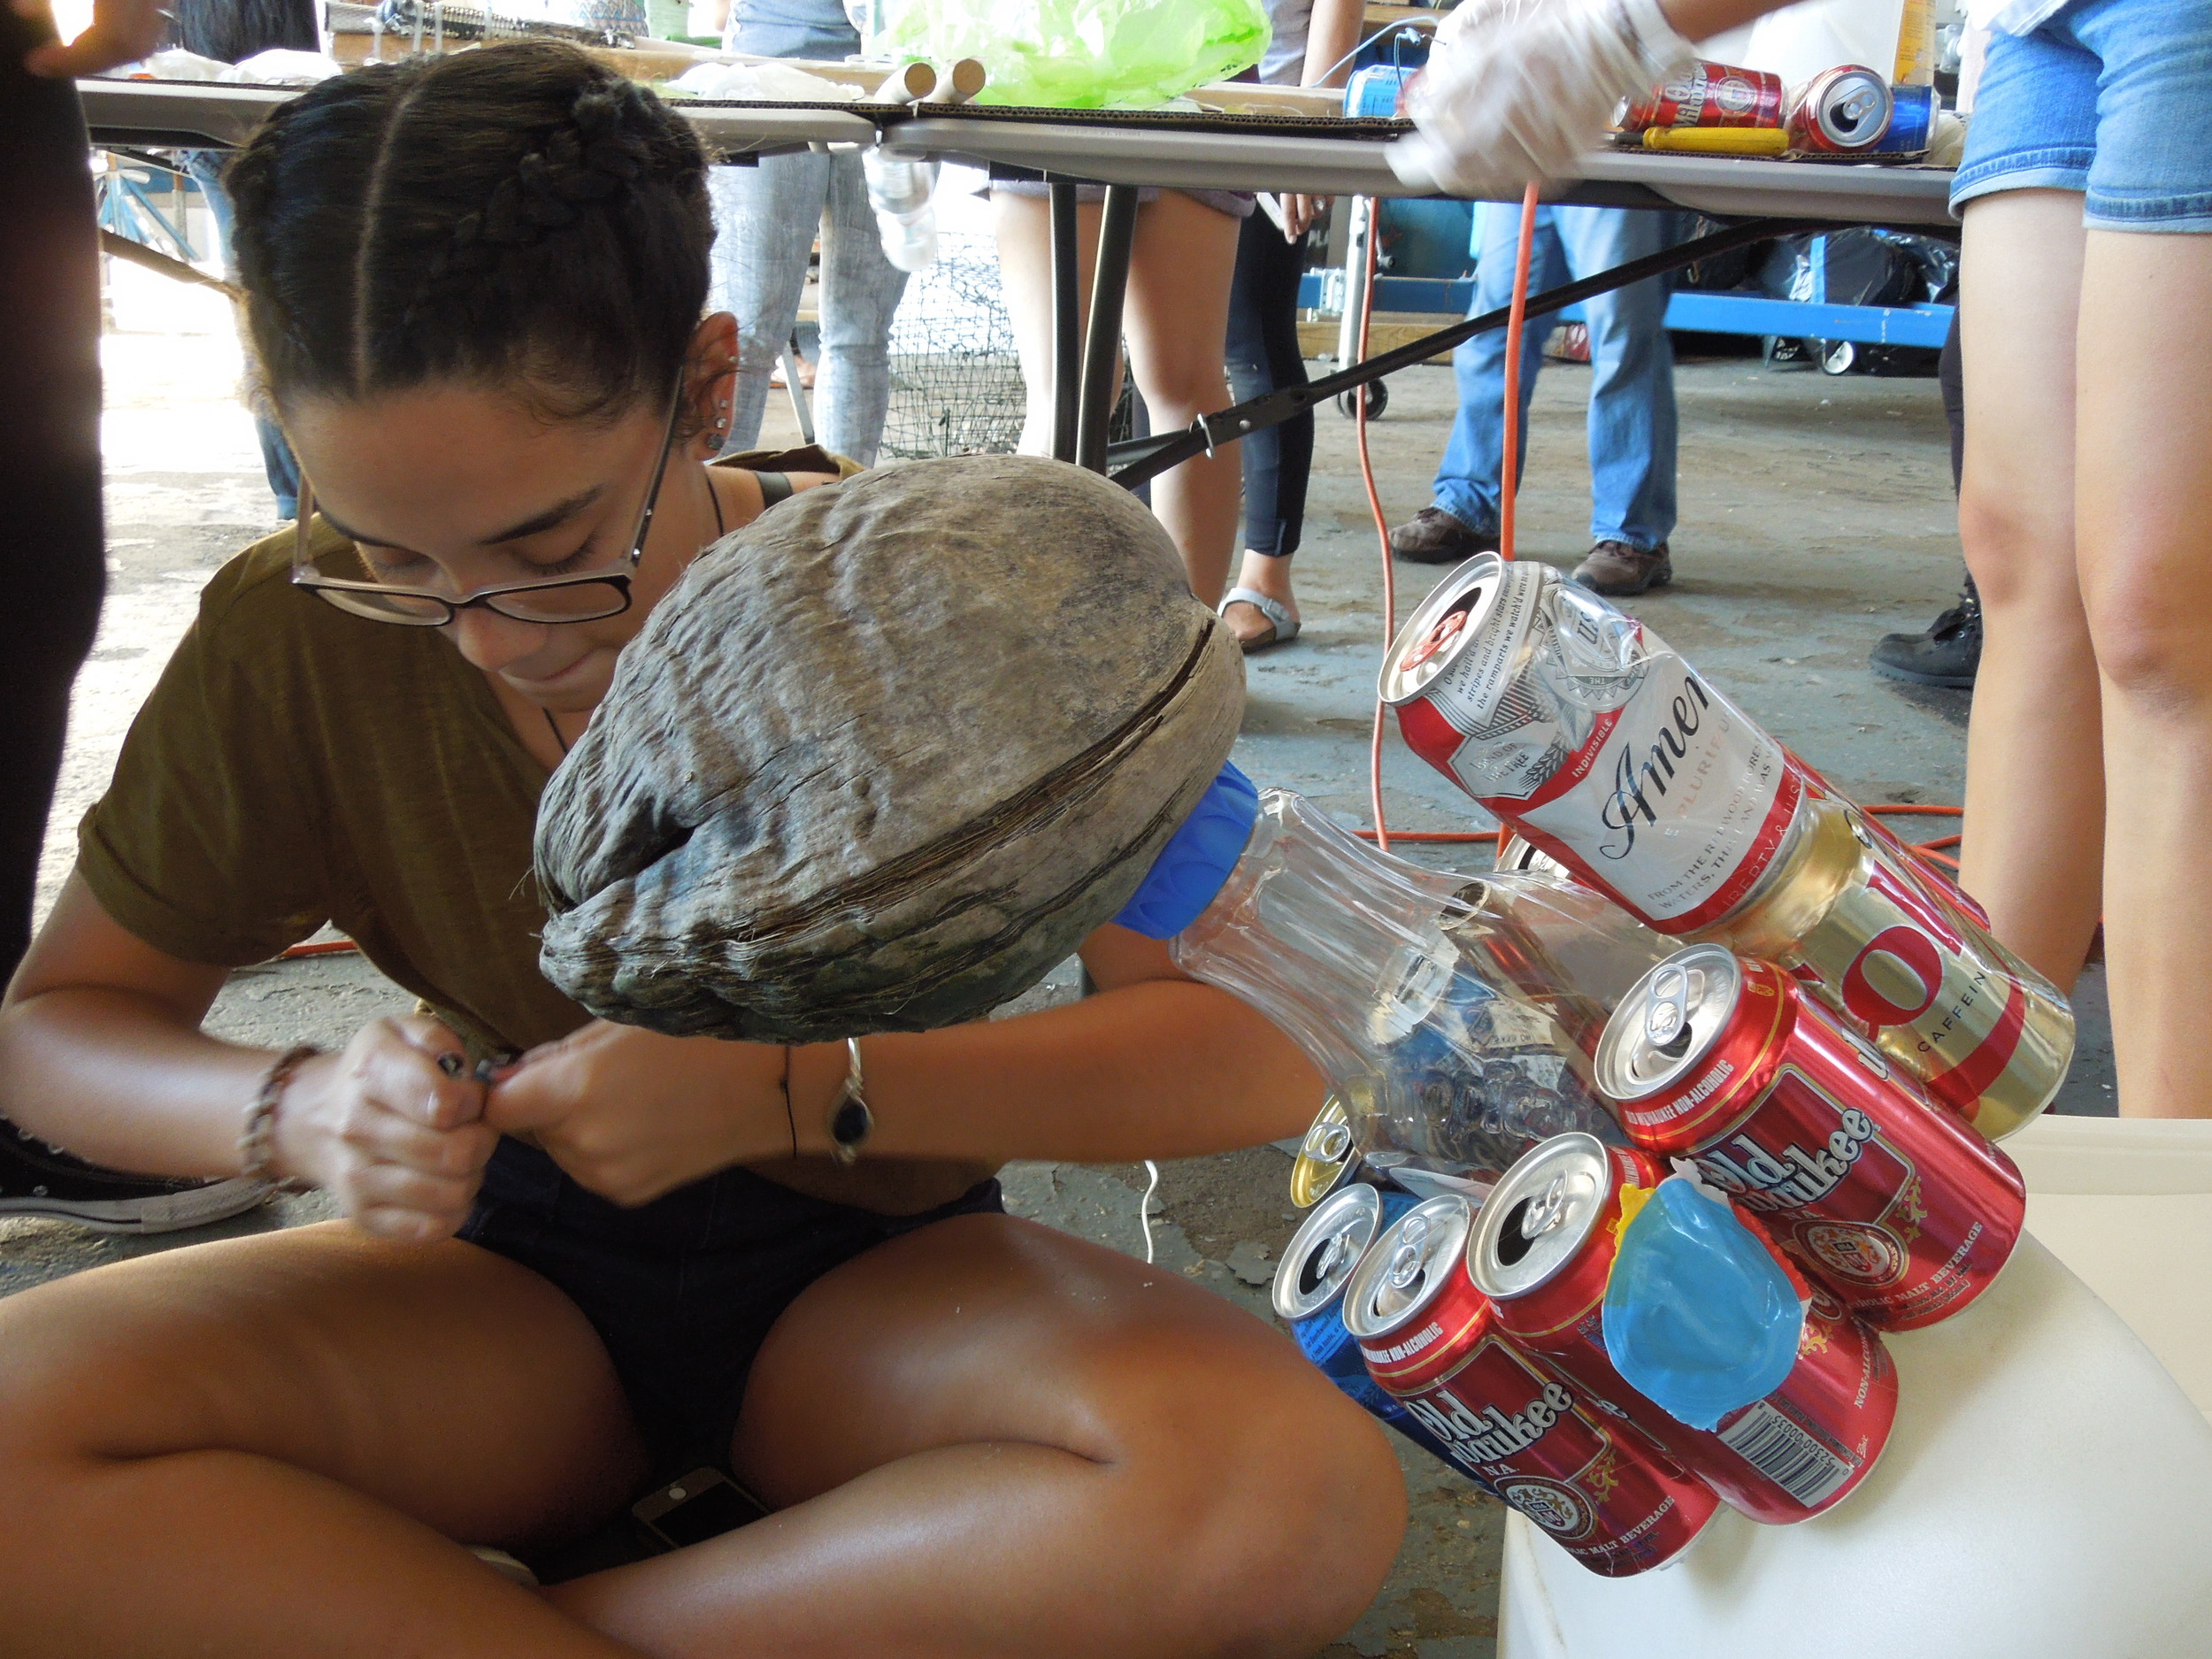 Kaitlyn Adames worked on the peace dove. The head is made from a coconut. The cans around the dove's neck represent garbage that marine life eat